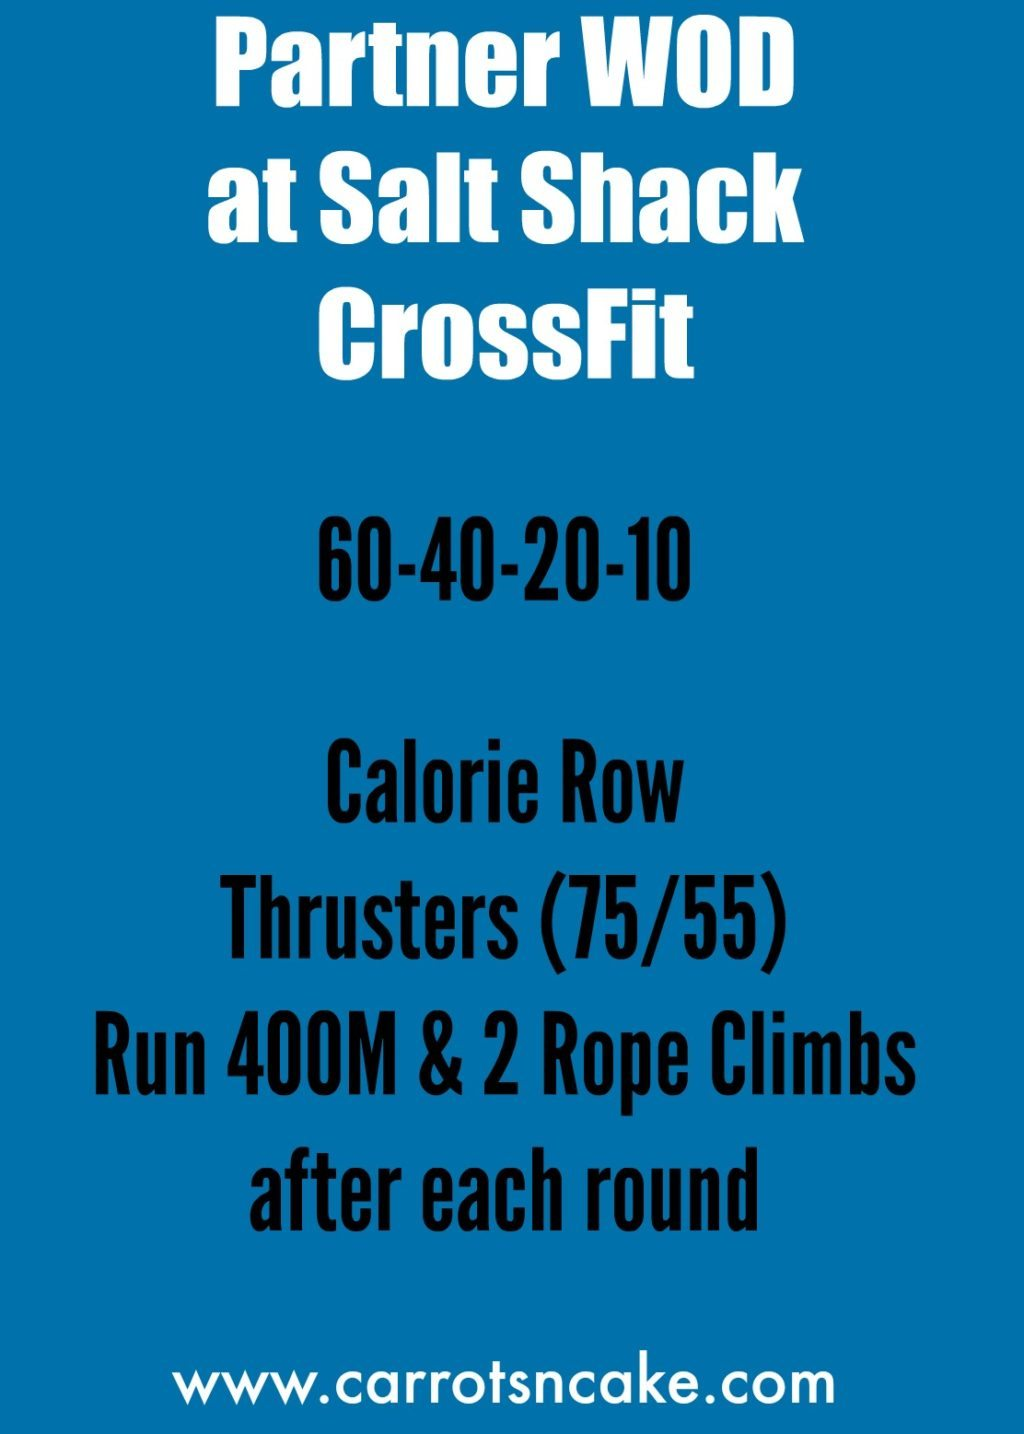 partner-wod-at-salt-shack-crossfit